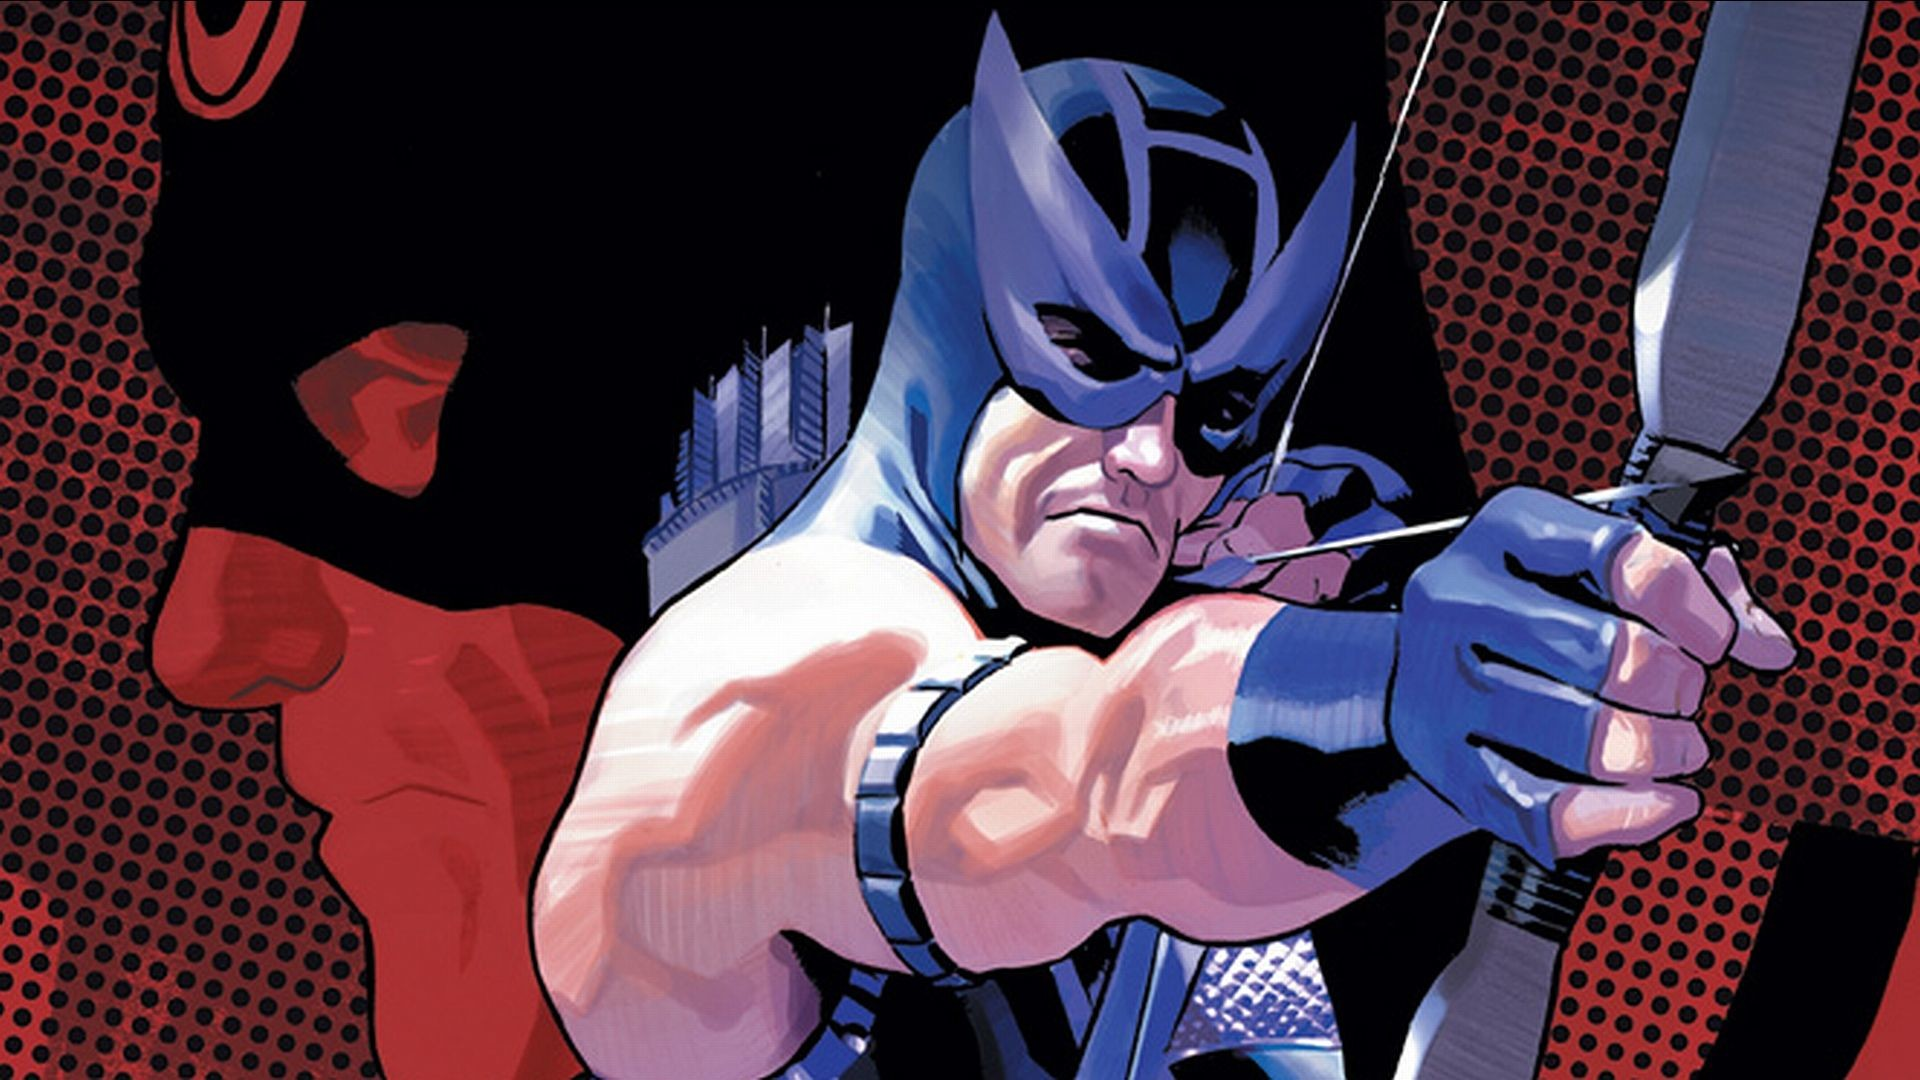 Hawkeye Wallpaper Marvel (72+ images)